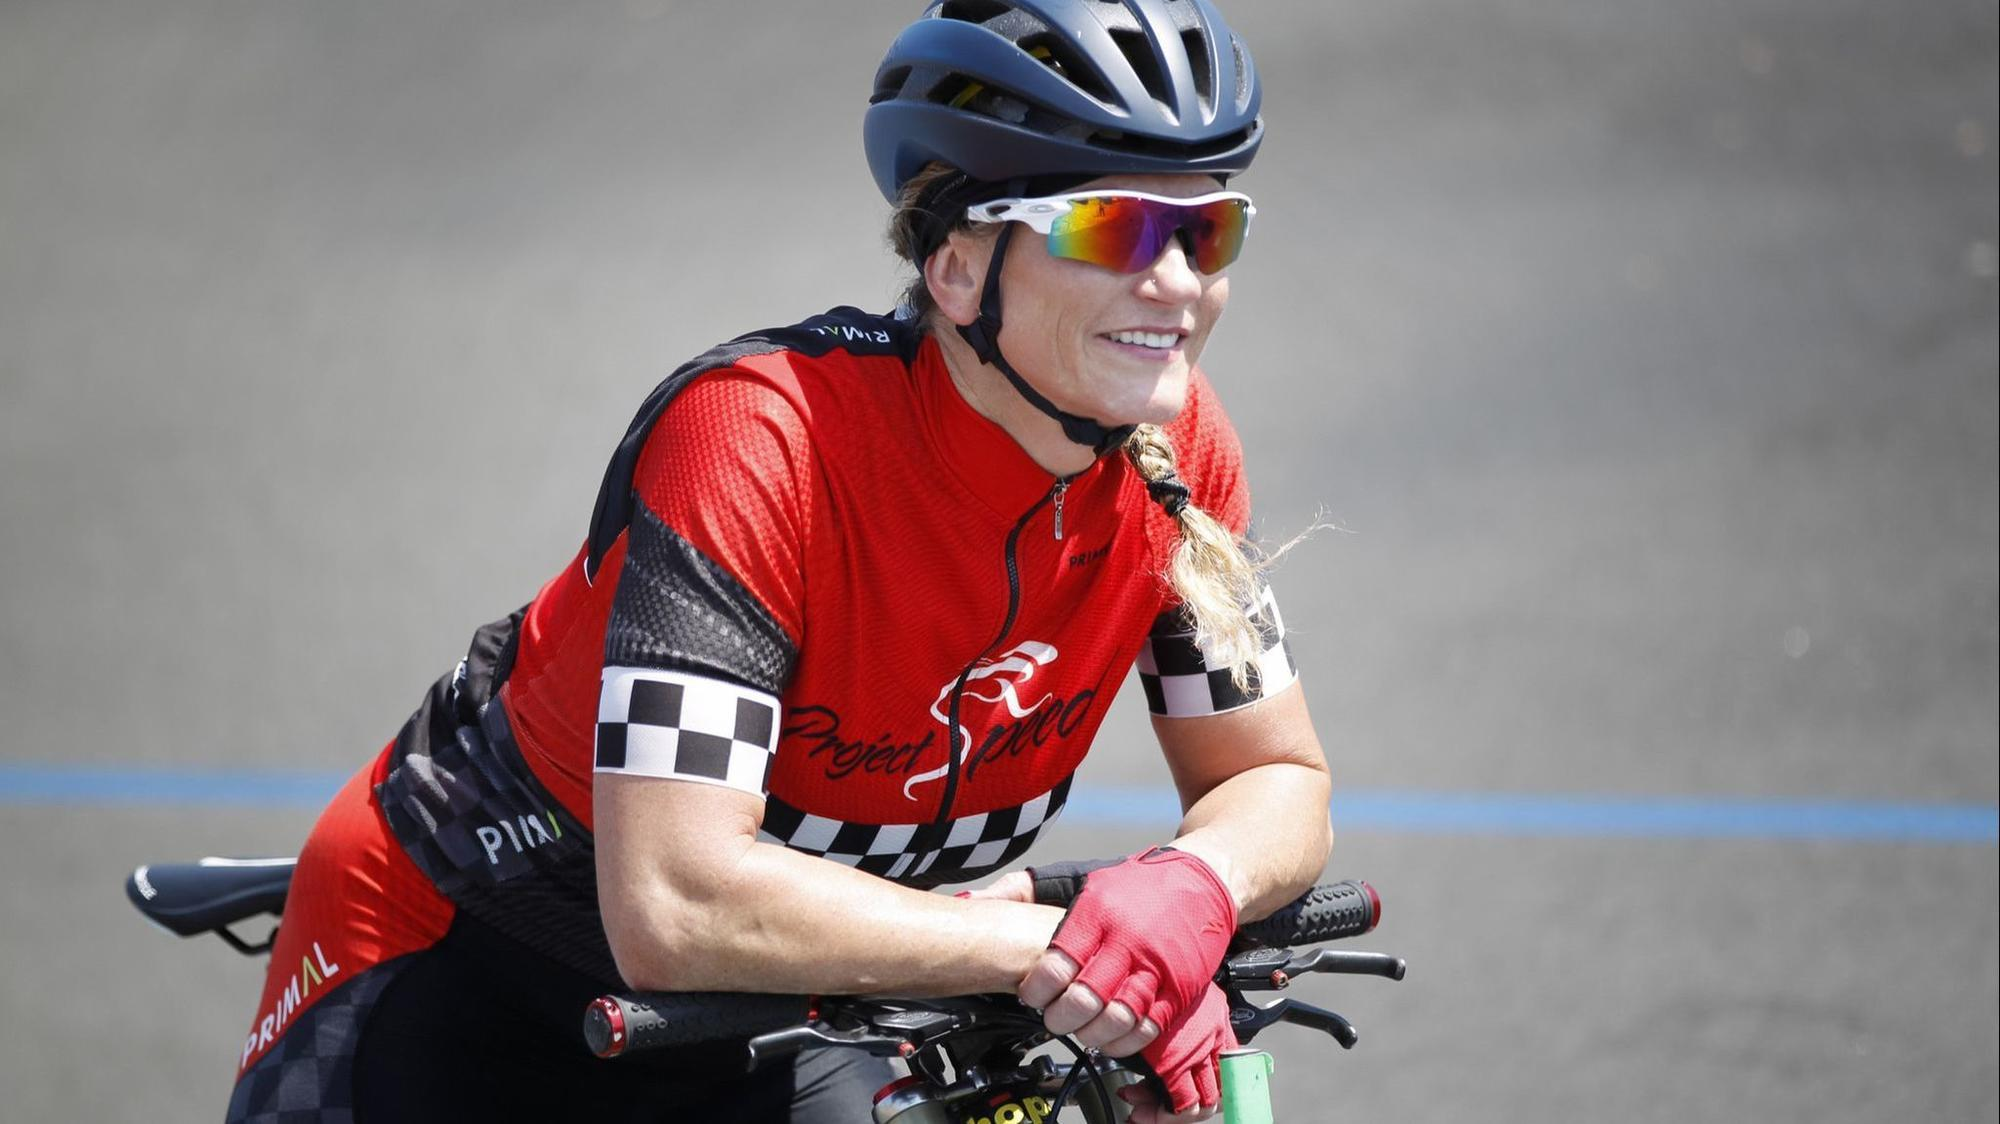 Woman cyclist aims for men s world speed record - The San Diego  Union-Tribune d47c19e80